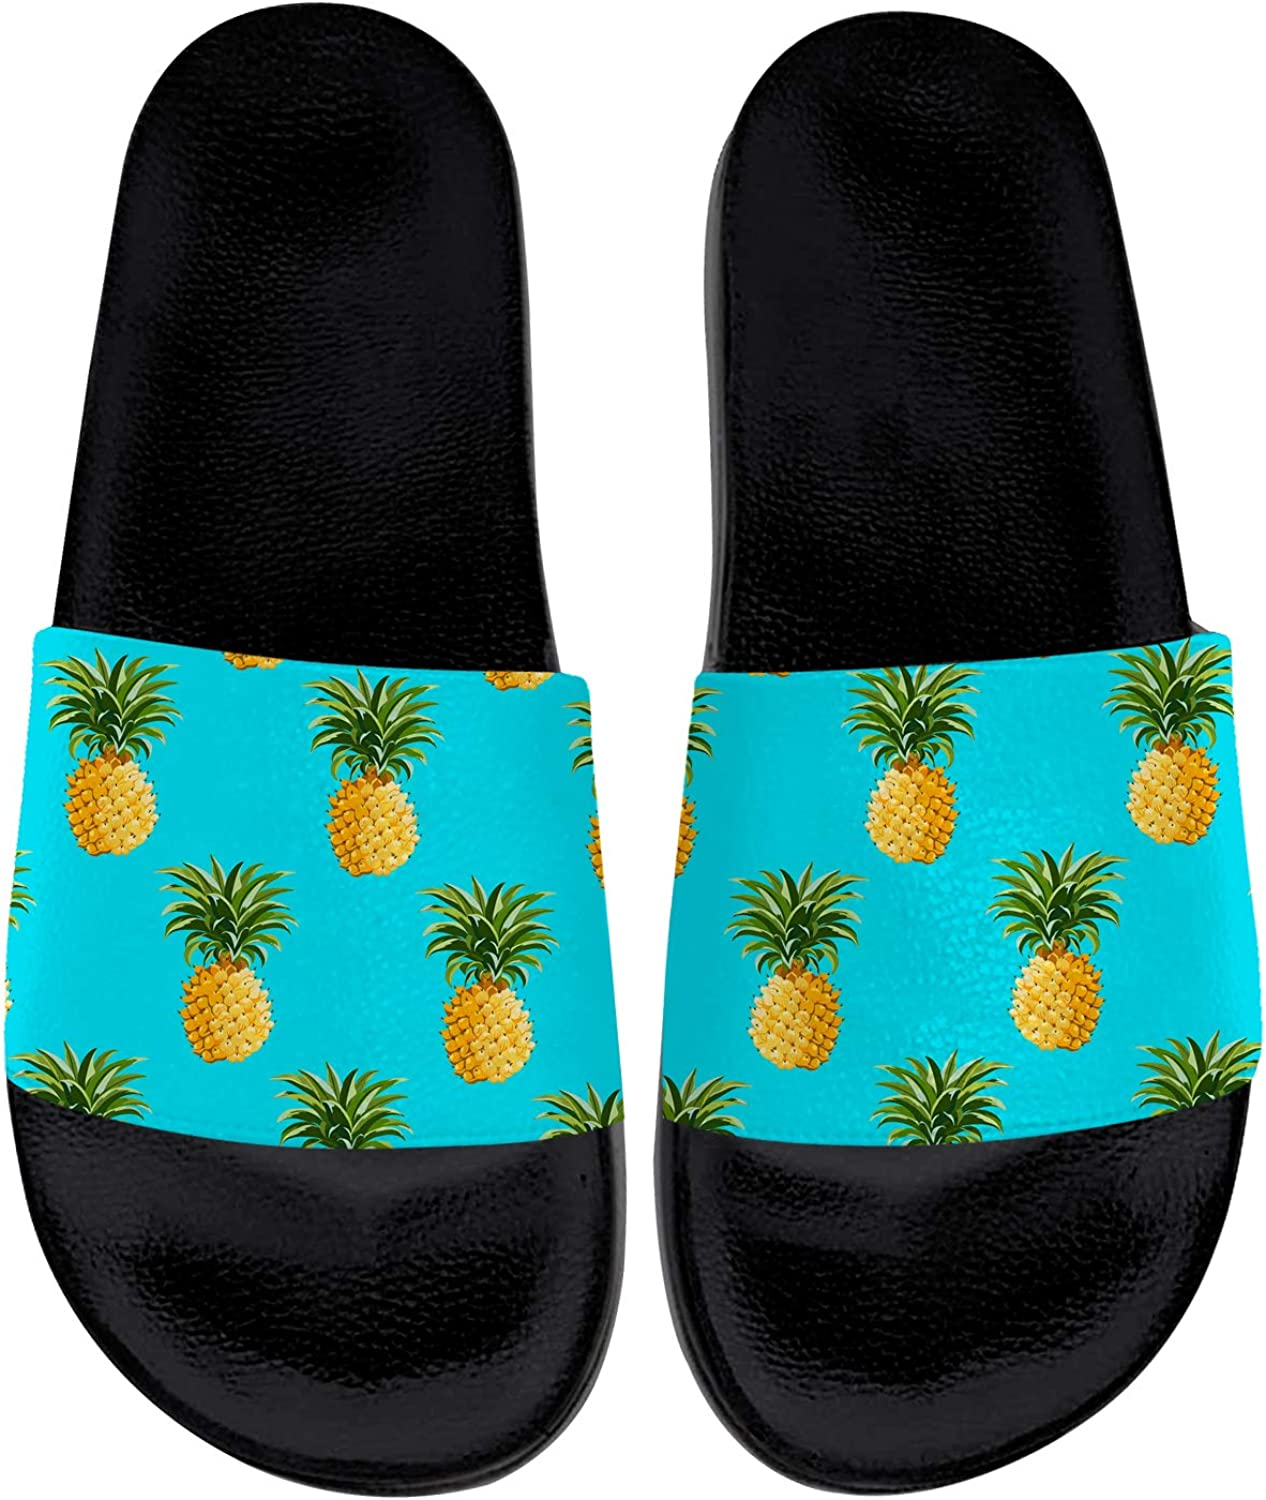 Pineapple Sandals Womens Oakland Max 79% OFF Mall Mens House Slid Indoor Outdoor Slippers